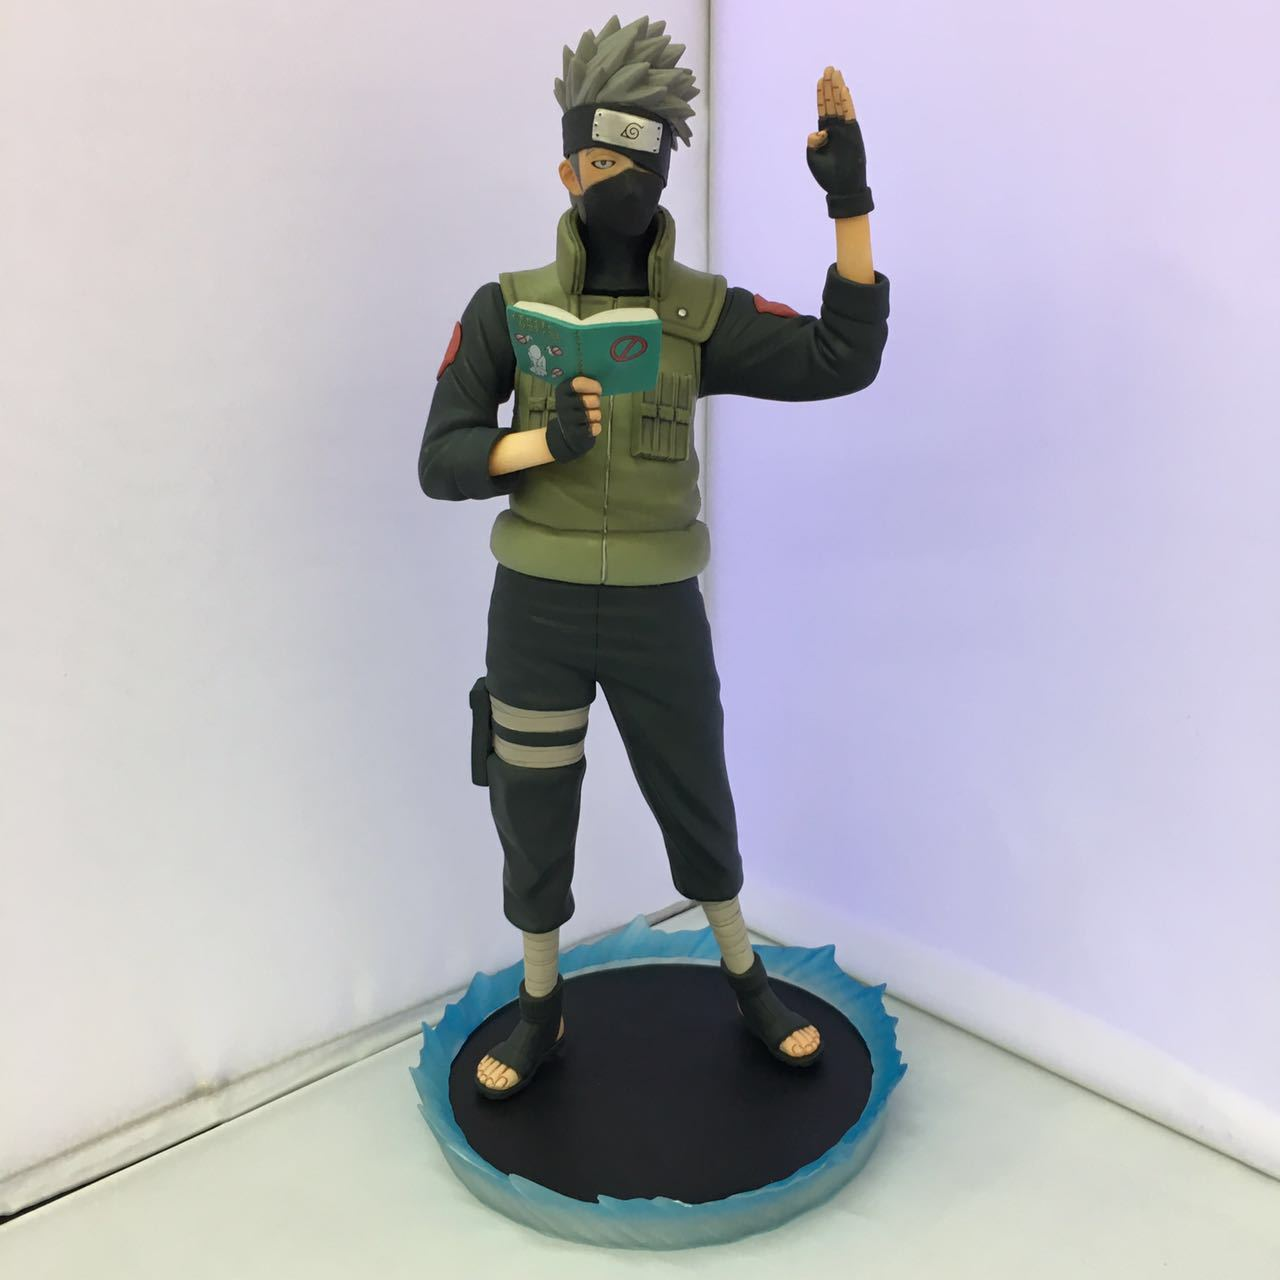 Naruto Kakashi Hatake Action Figure Sharingan Ver. Kakashi Doll PVC Action Figure Collectible Model Toy 30cm KT3510 21cm naruto hatake kakashi pvc action figure the dark kakashi toy naruto figure toys furnishing articles gifts x231